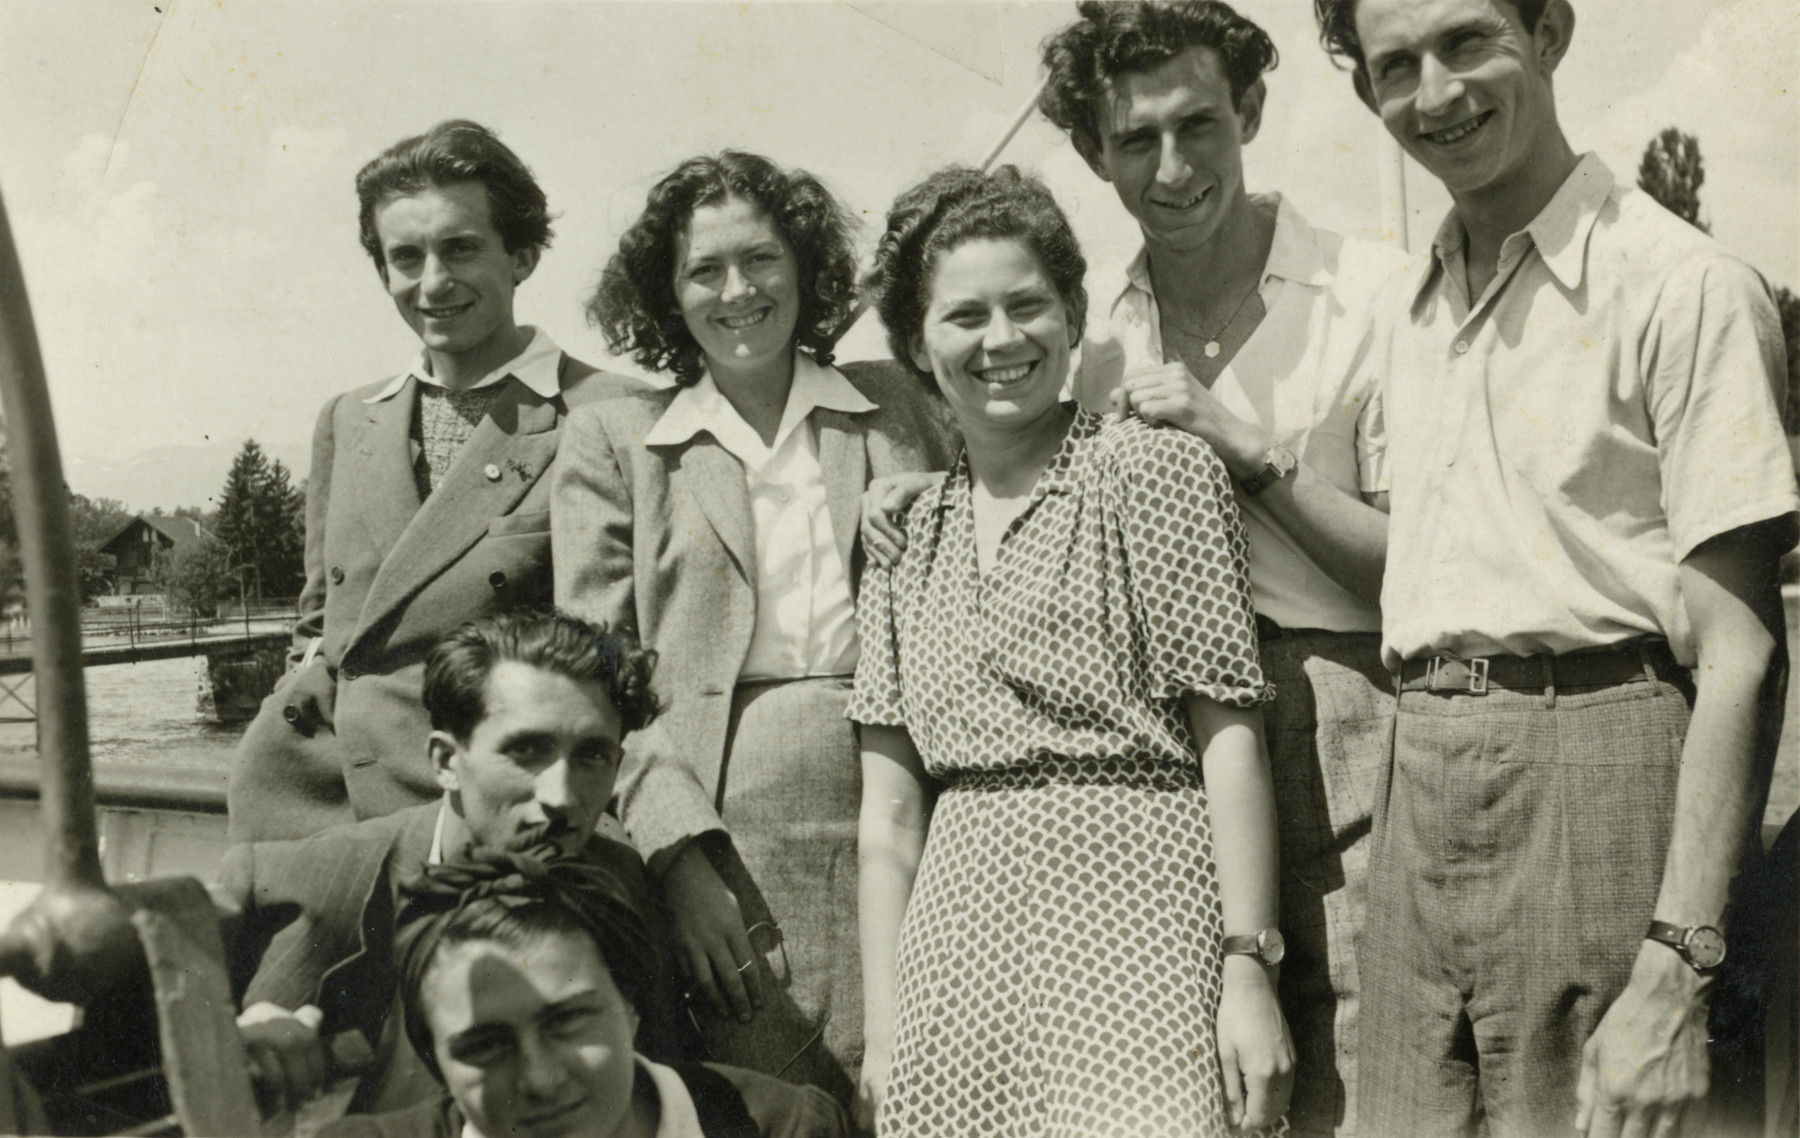 Group portrait of Jewish youth in Switzerland, who survived the war with the Kasztner transport, on a trip to Geneva.  From left to right: Judith Nobel (bottom), Leo and Dina Jung (fromYugoslovakia),  Suzanne Sigmund (third from right), her future husband Milan Uri Mayer, Emanuel Diamant, Baruch Robinsohn, and unknown.